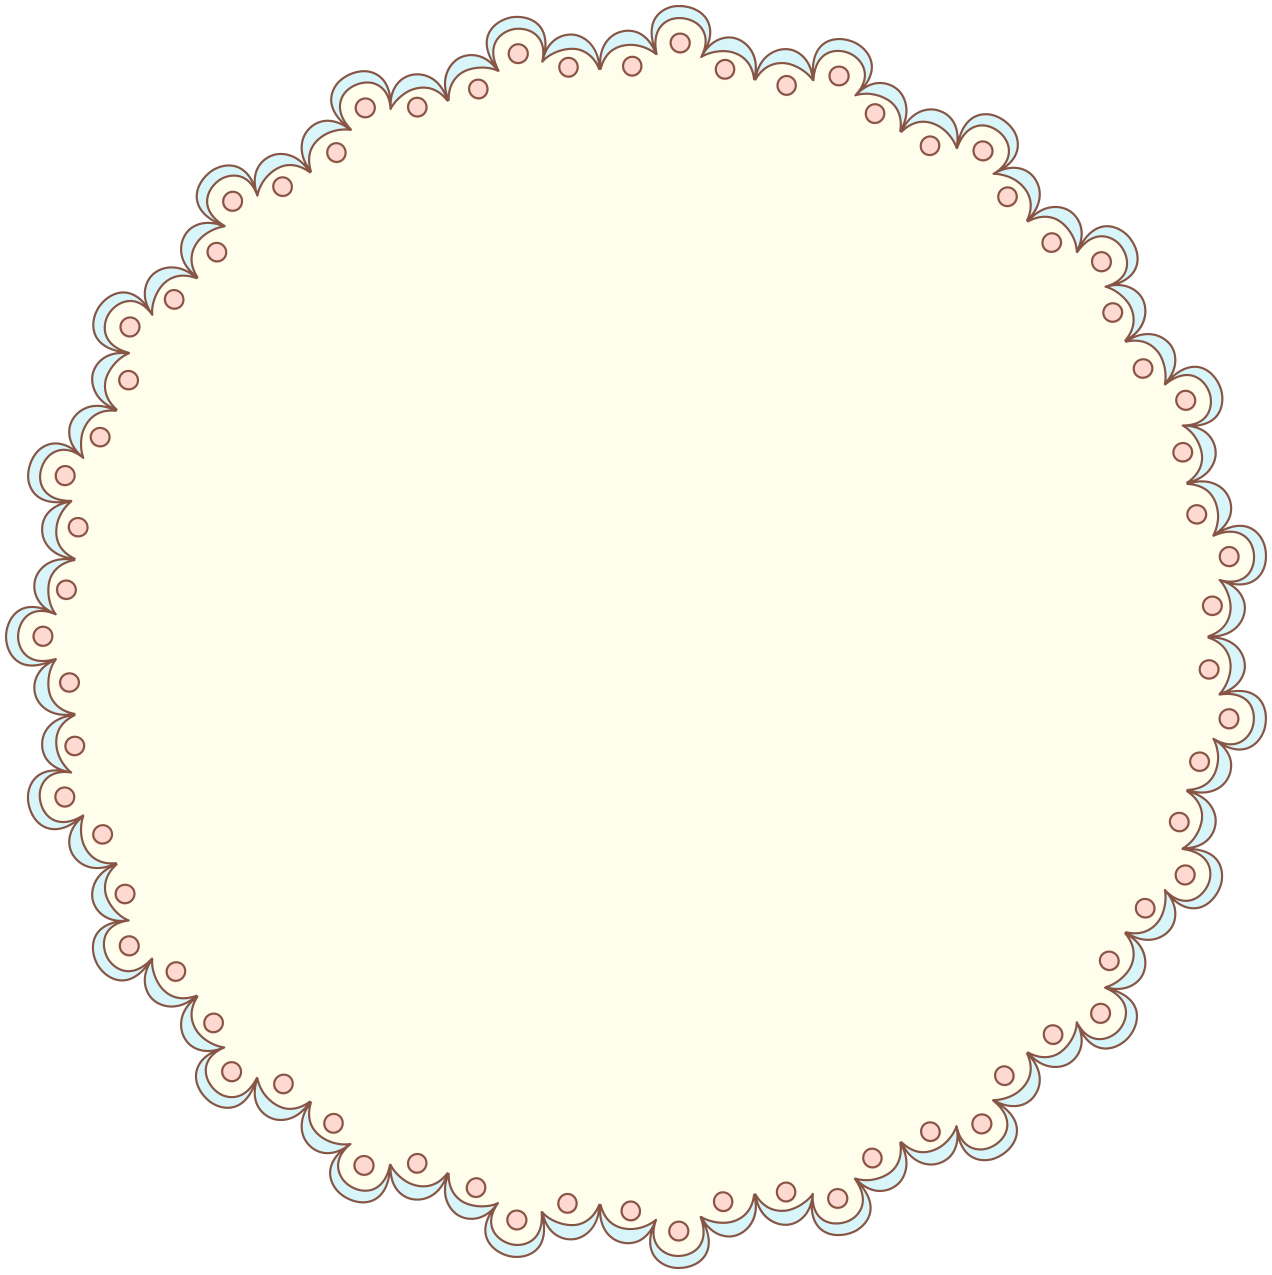 Free doily clipart svg royalty free stock Free Doily Cliparts, Download Free Clip Art, Free Clip Art on ... svg royalty free stock